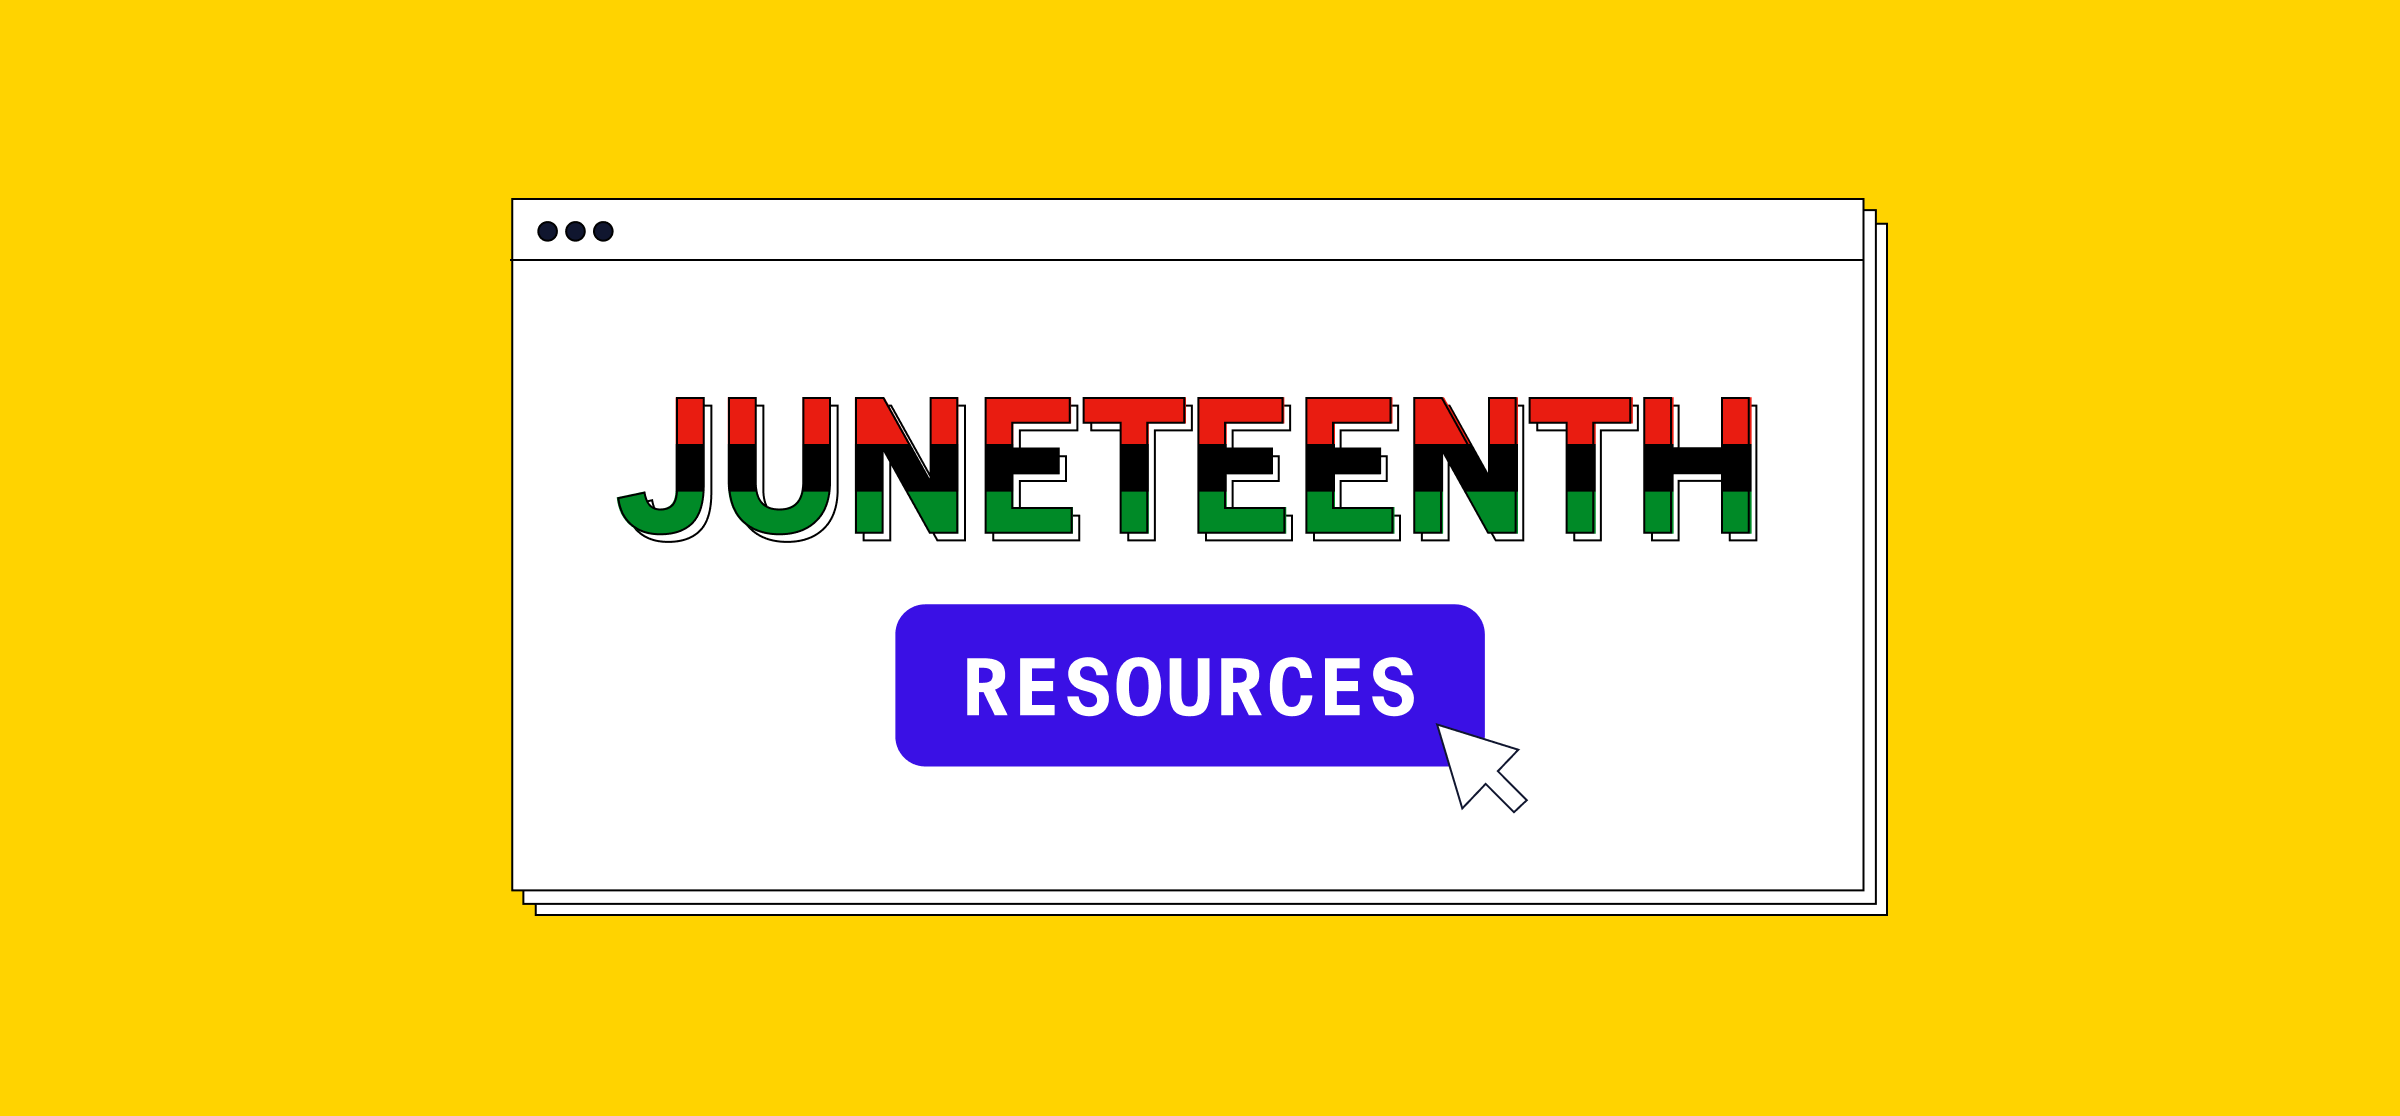 Celebrating and learning about Juneteenth: A resource guide